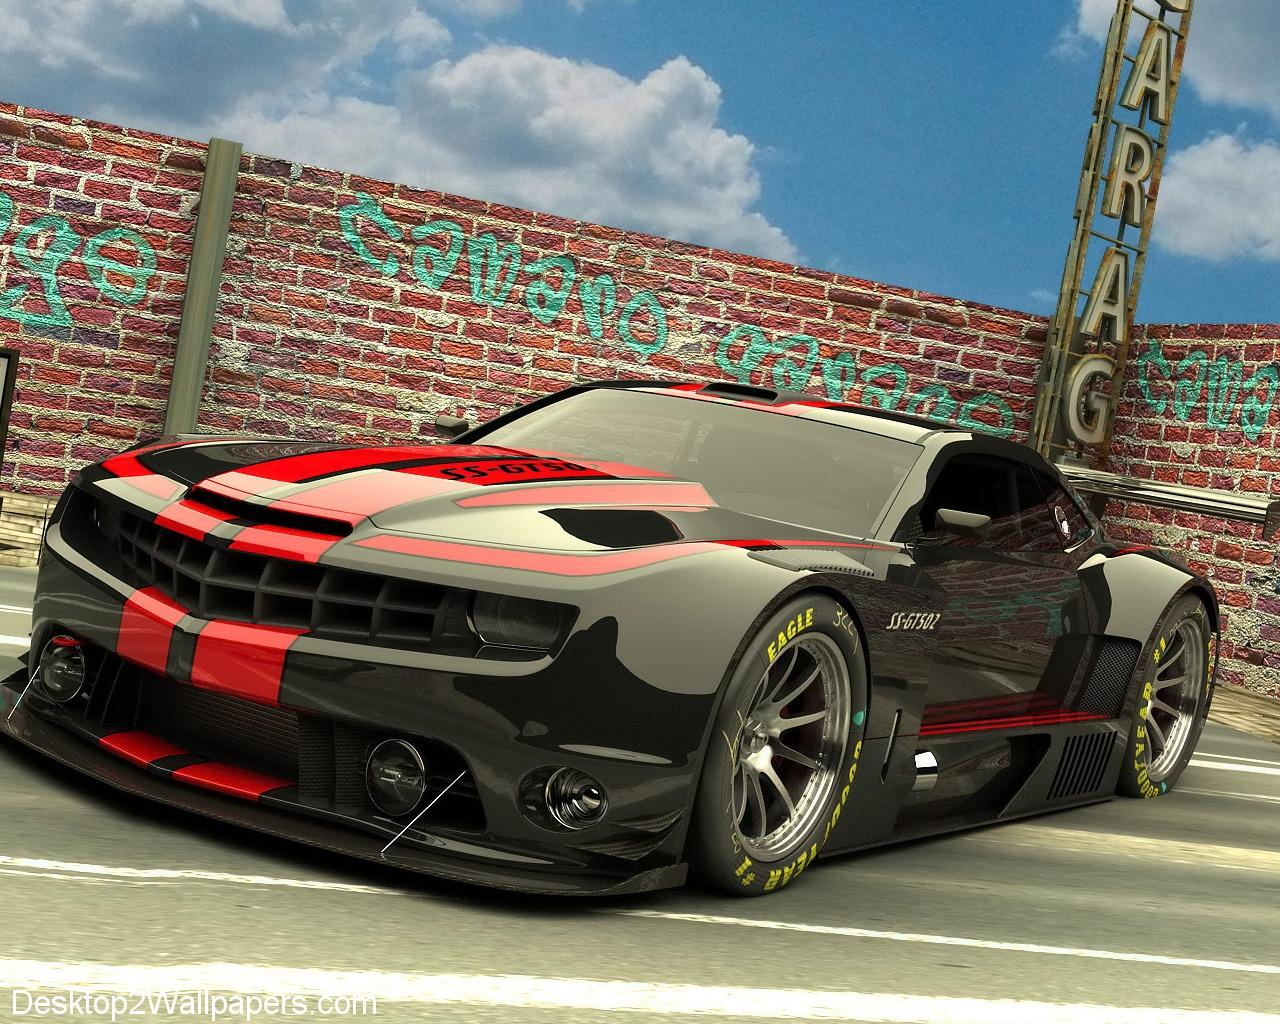 New Best Hd Car Background Editing Tools Editing Tool